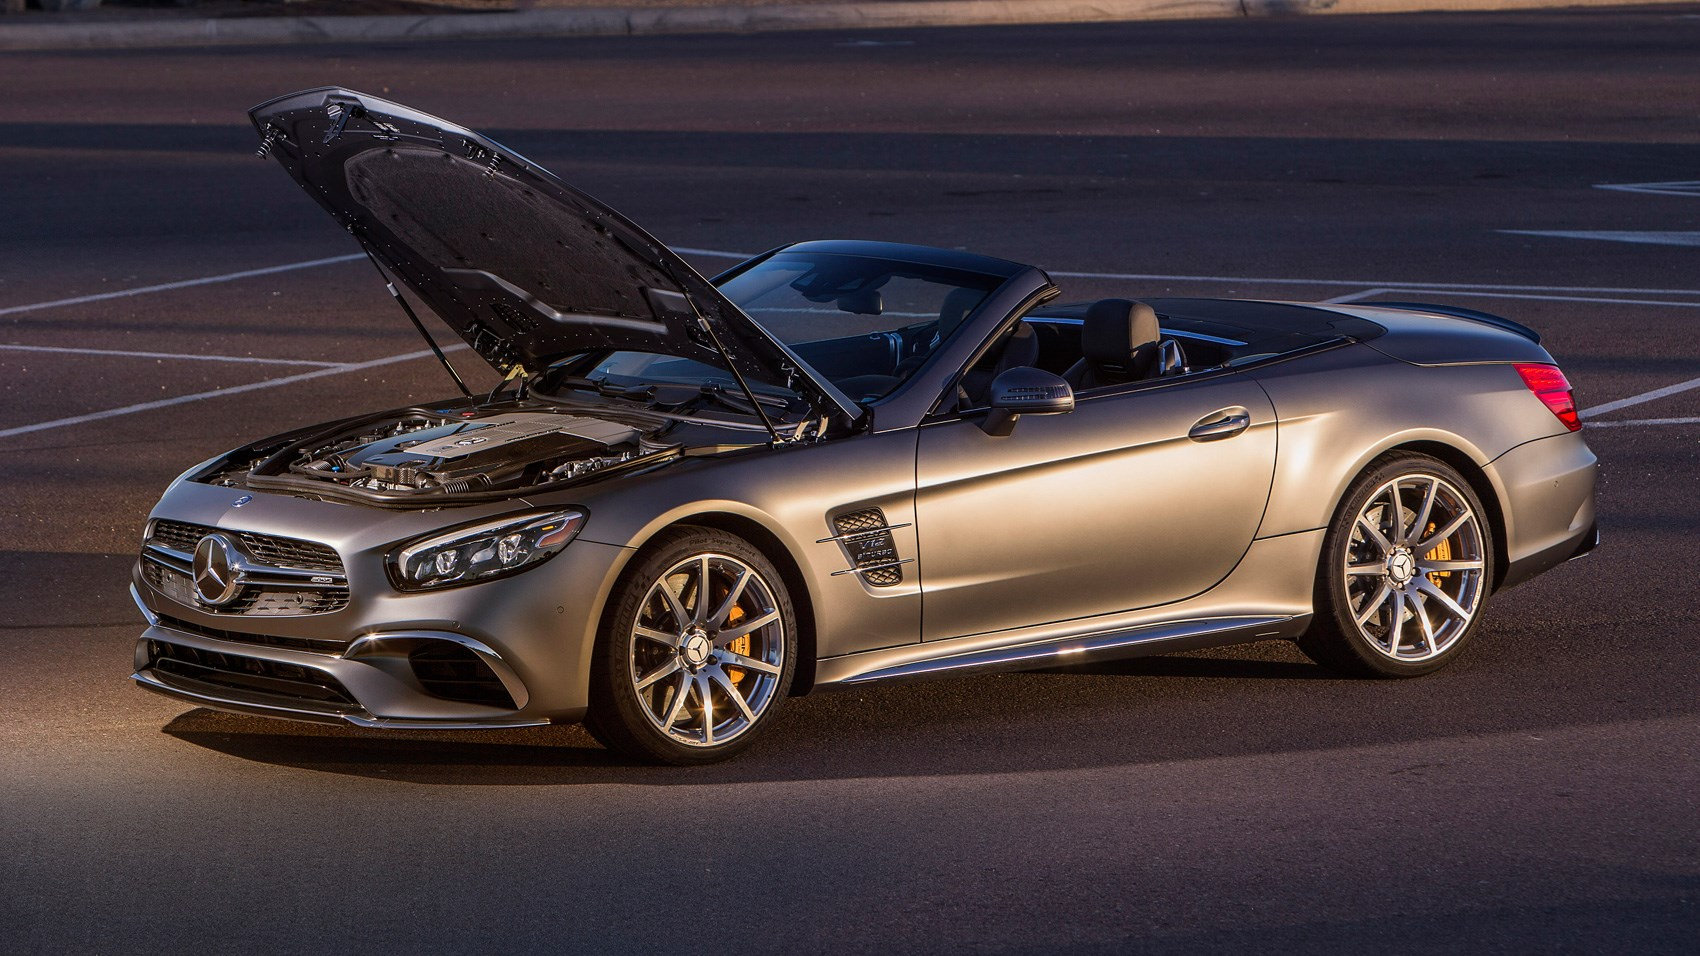 Mercedes amg sl65 2016 review by car magazine for Mercedes benz sl amg price